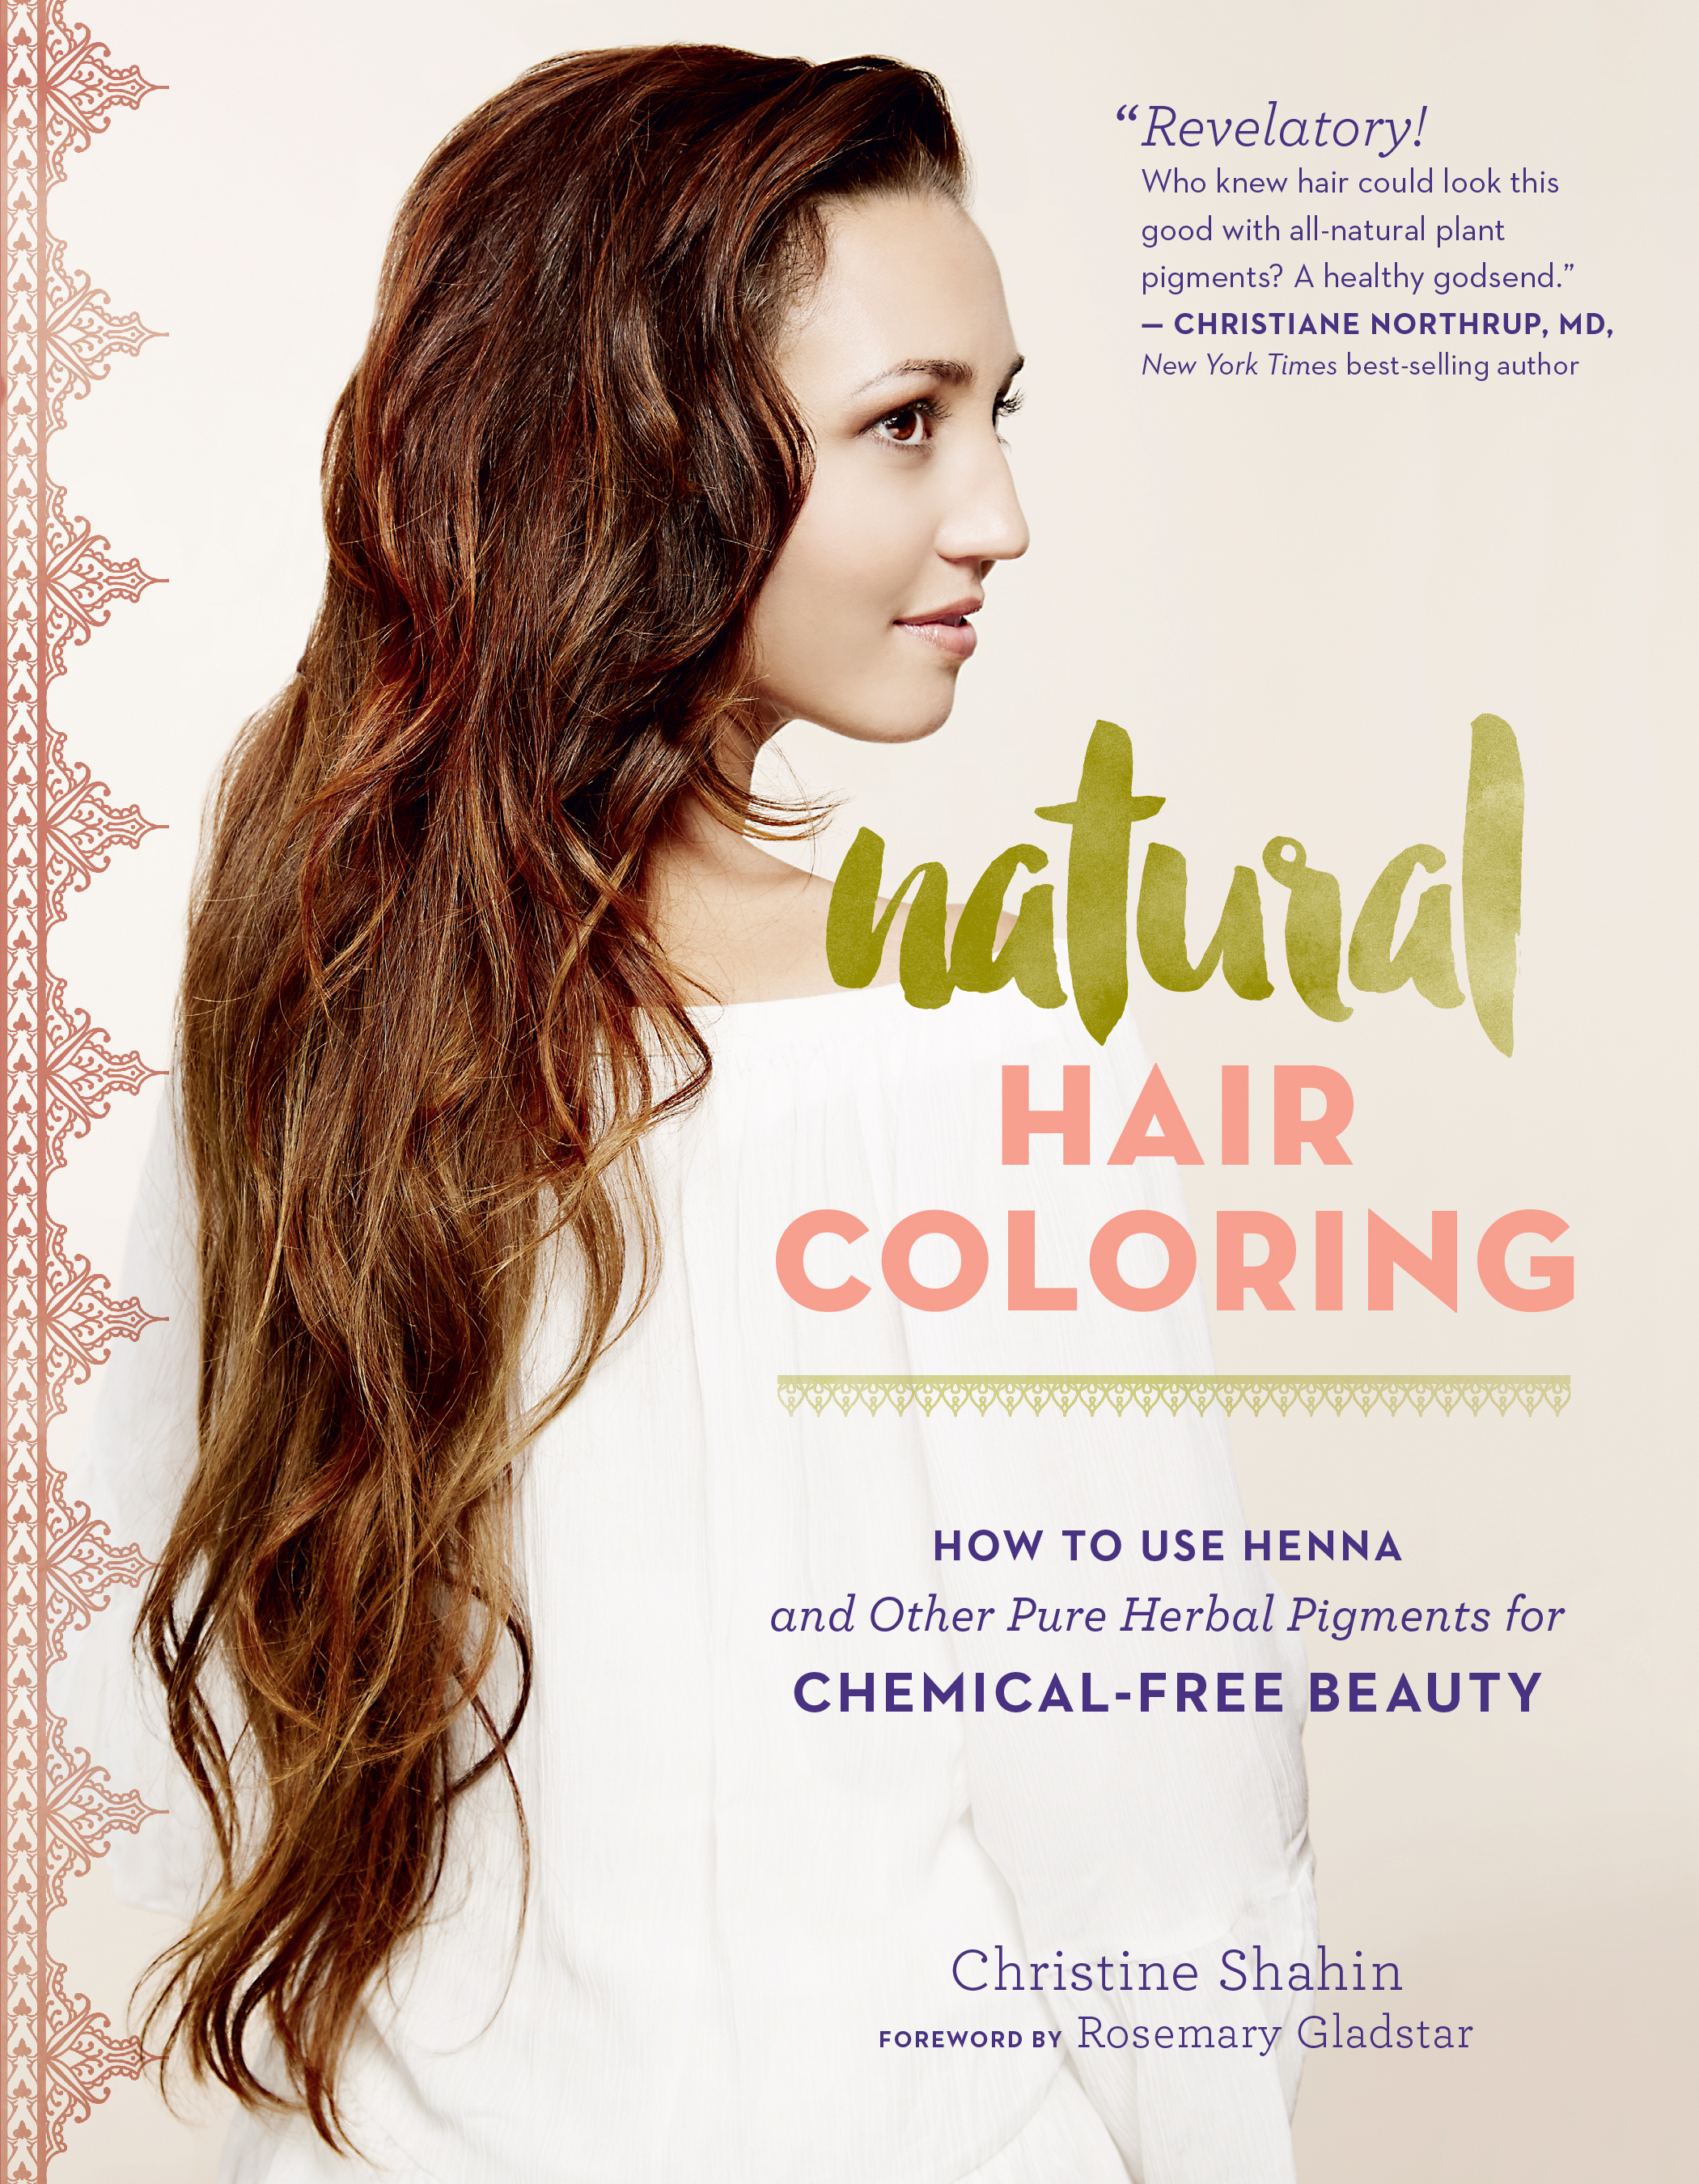 81ea1cd07 Natural Hair Coloring: How to Use Henna and Other Pure Herbal Pigments for  Chemical-Free Beauty by Christine Shahin